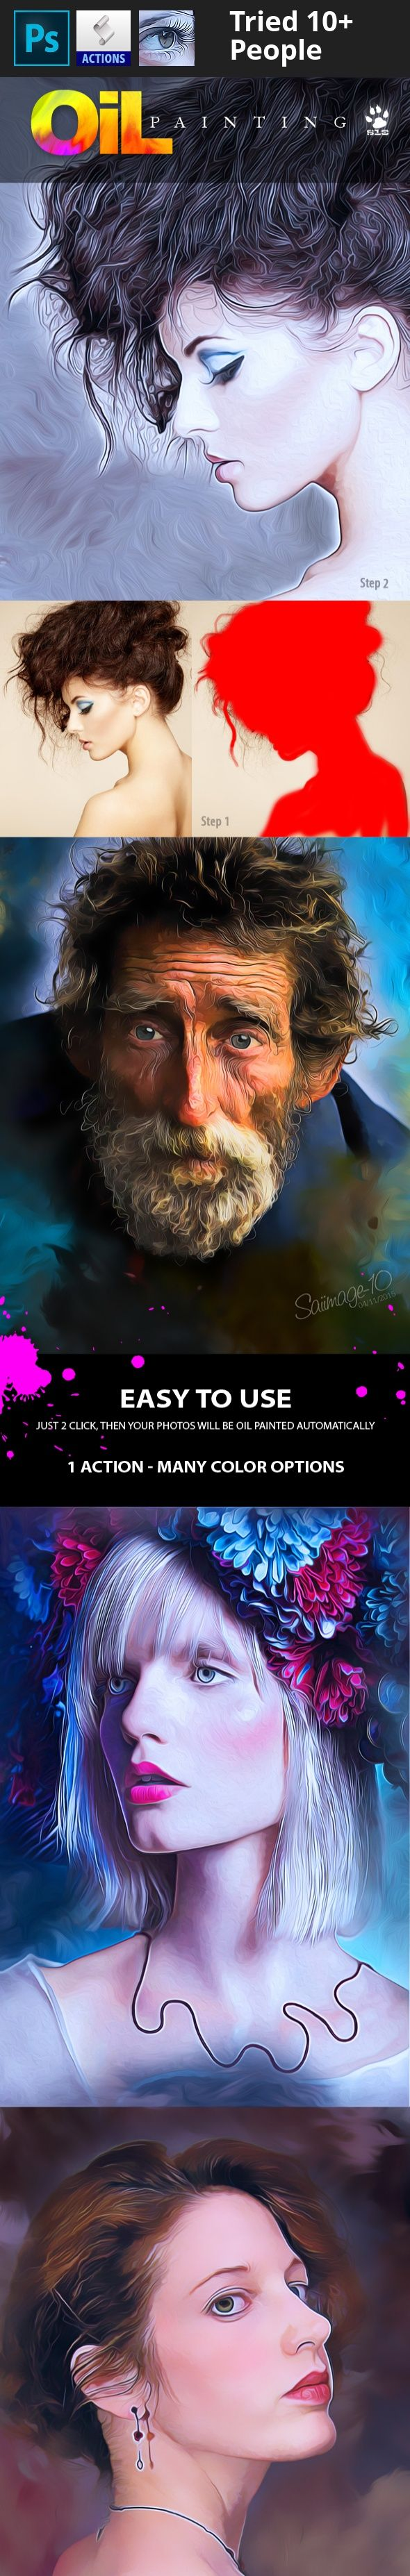 action, actions, artist, creative, digital Pencil, drawing, effects, freehand sketch, gradient, images, light, oil, oil paint, paint, pencil, pencil sketch, photoshop, psd, sketching, soft, vintage Just install and play action for awesome Oil effects.   	Included File  1. ATN File  2. Help File  3. Info File  Note   	Only works on ENGLISH VERSION PHOTOSHOP CS6+   	Change language to English click TUTORIAL   	Preview Image not included.